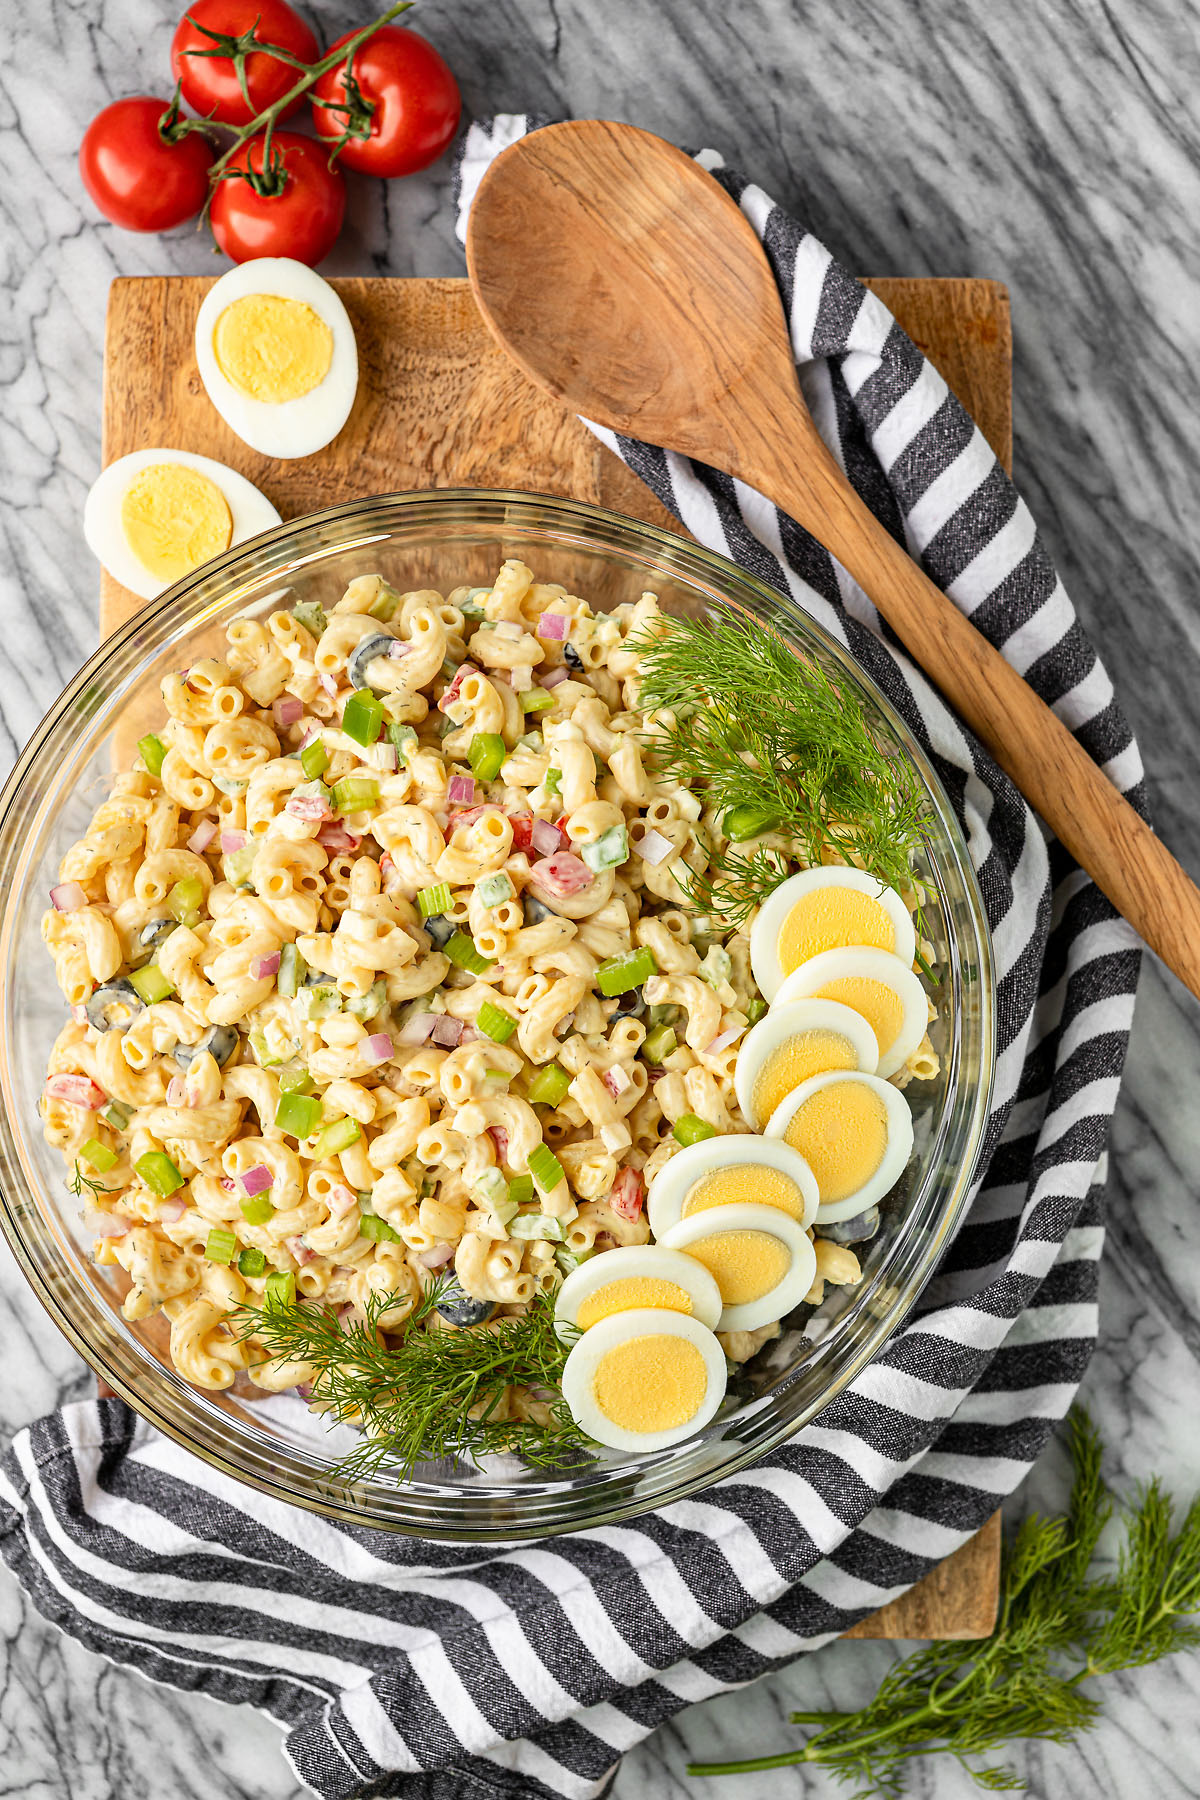 macaroni salad with egg in a glass bowl garnished with hard boiled eggs and fresh dill and a wooden spoon on the side